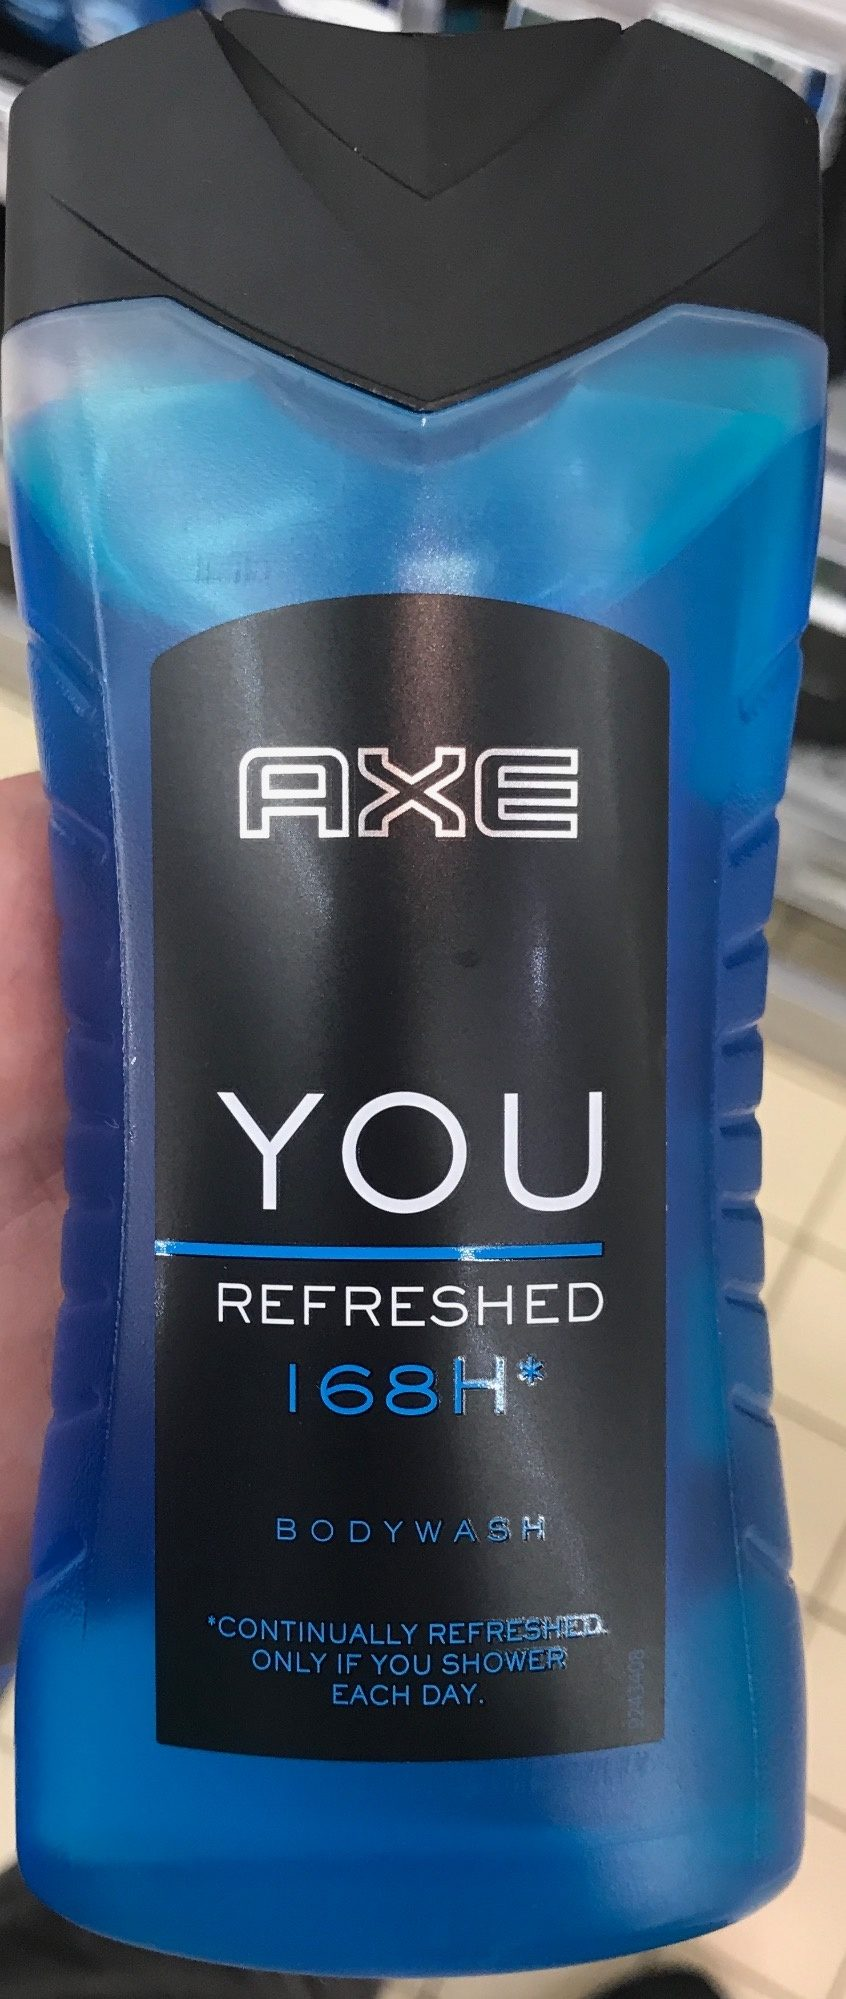 You Refreshed 168H Bodywash - Product